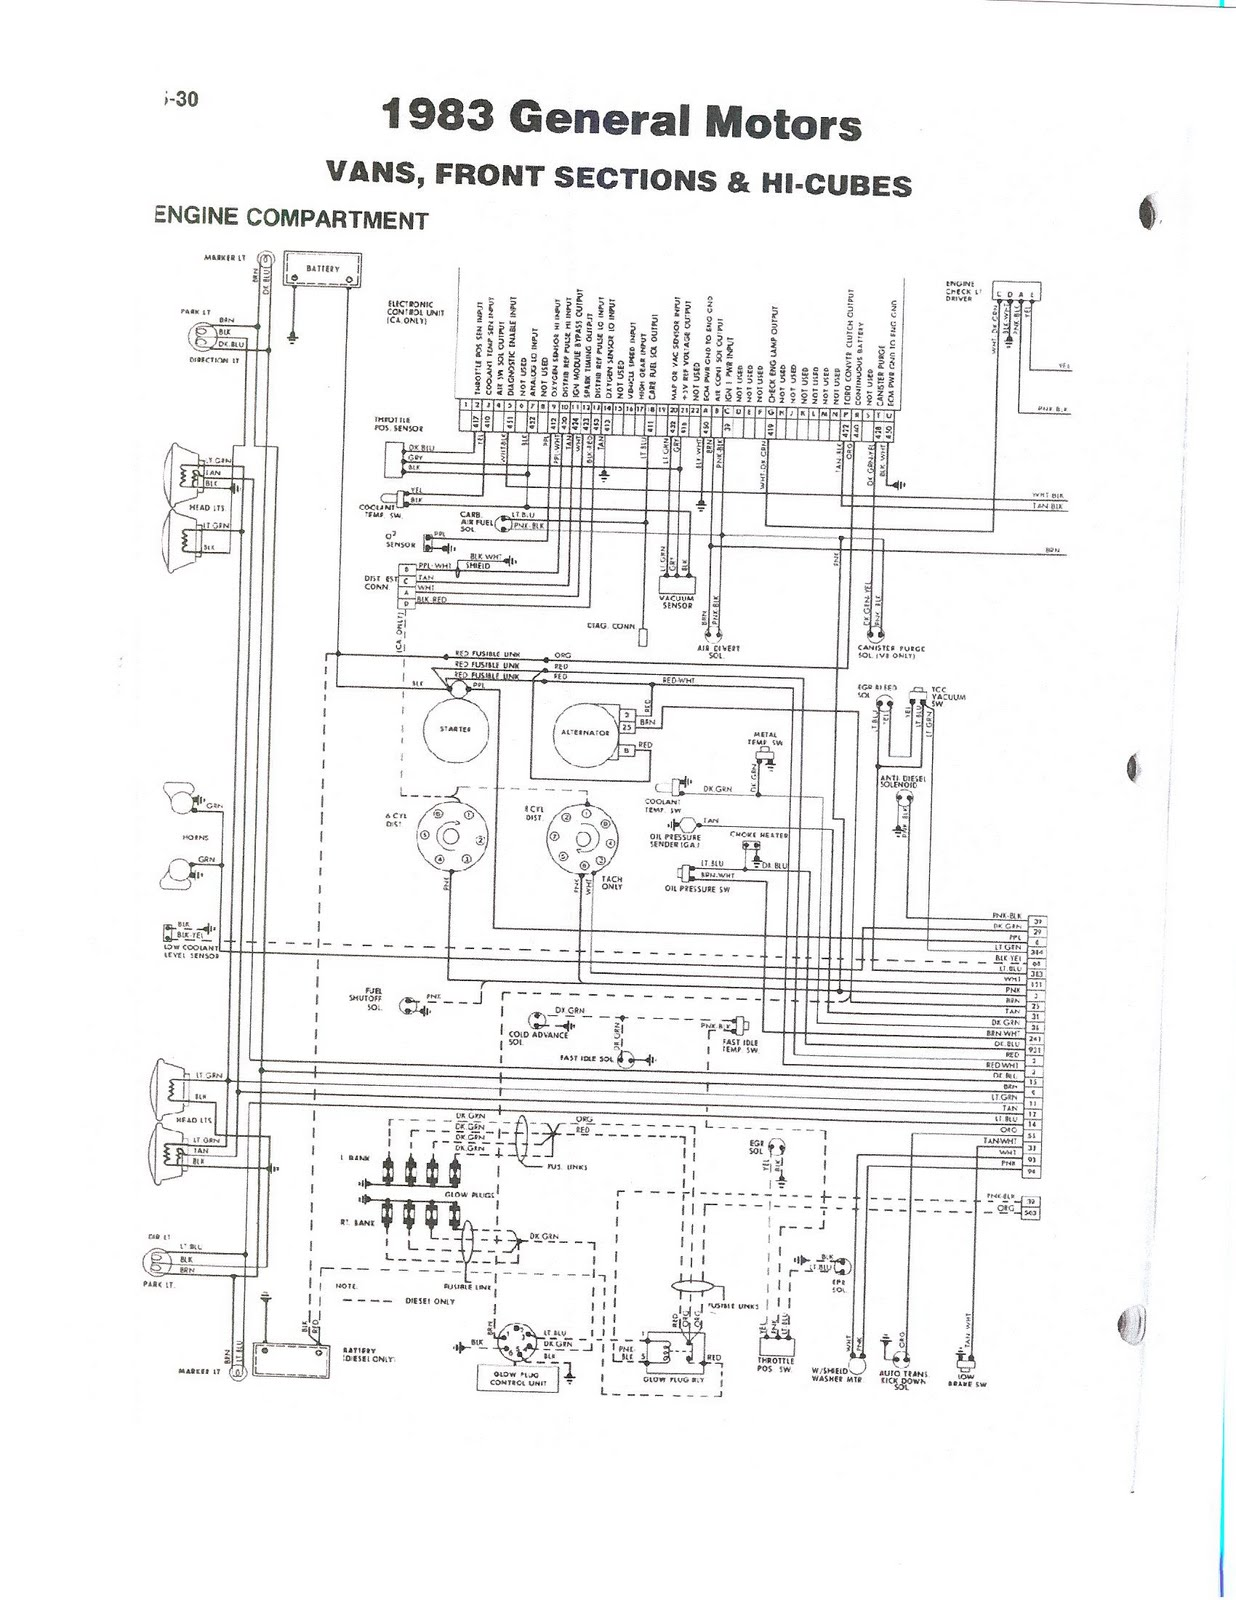 Fleetwood wiring diagram wiring diagram 1983 coachmen wiring diagram wiring diagrams schematics fleetwood motorhome electrical diagram fleetwood wiring diagram cheapraybanclubmaster Gallery